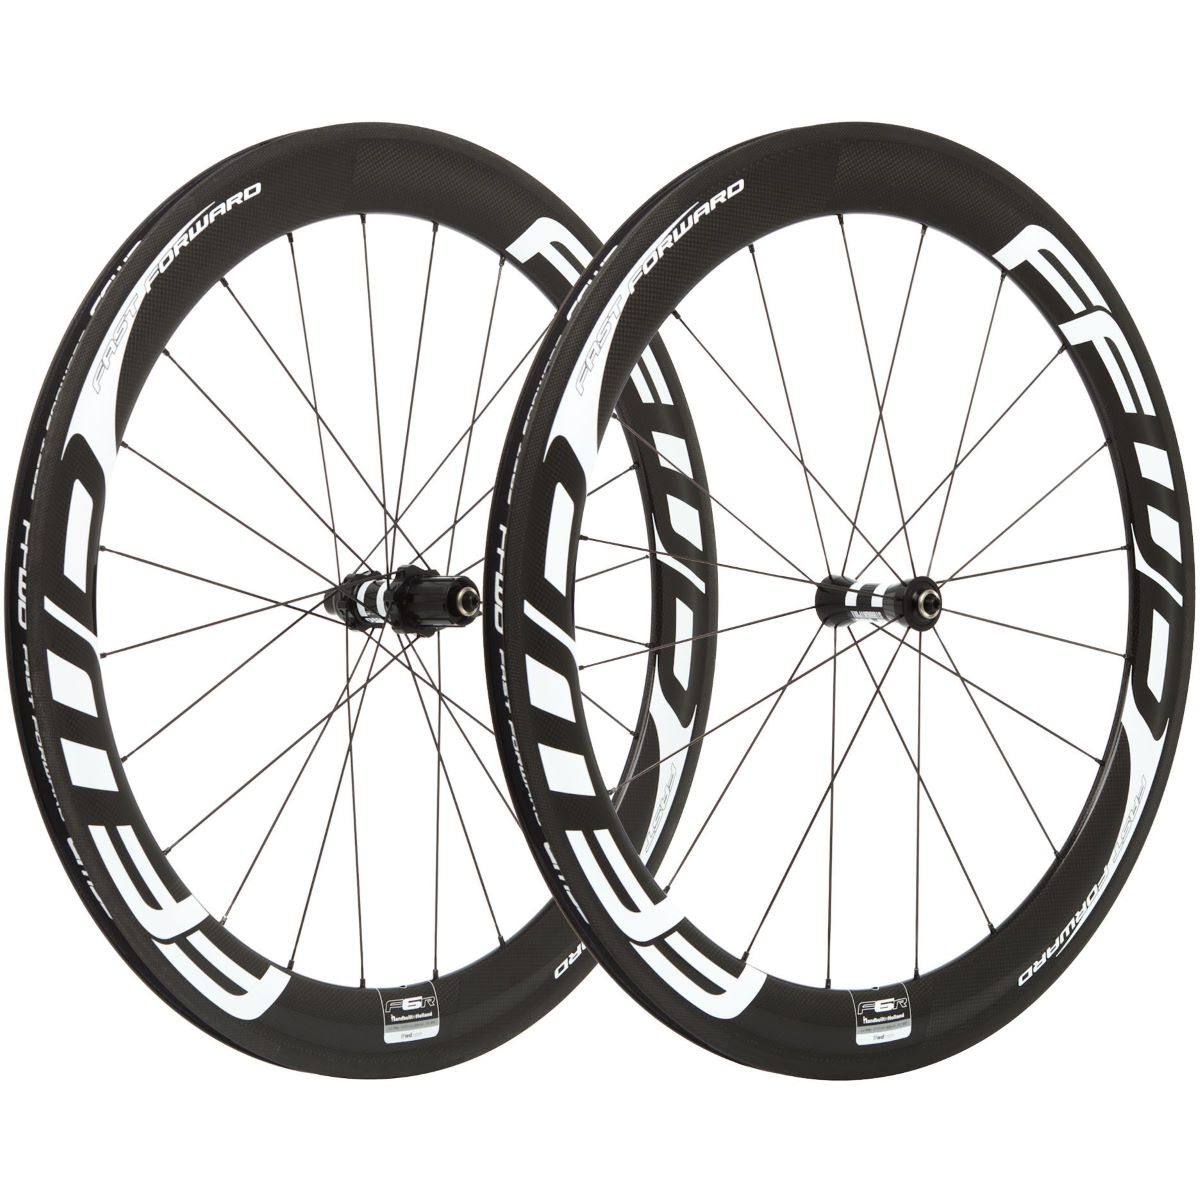 Fast Forward Carbon F6R FCC 60mm SP Wheelset - Juegos de ruedas